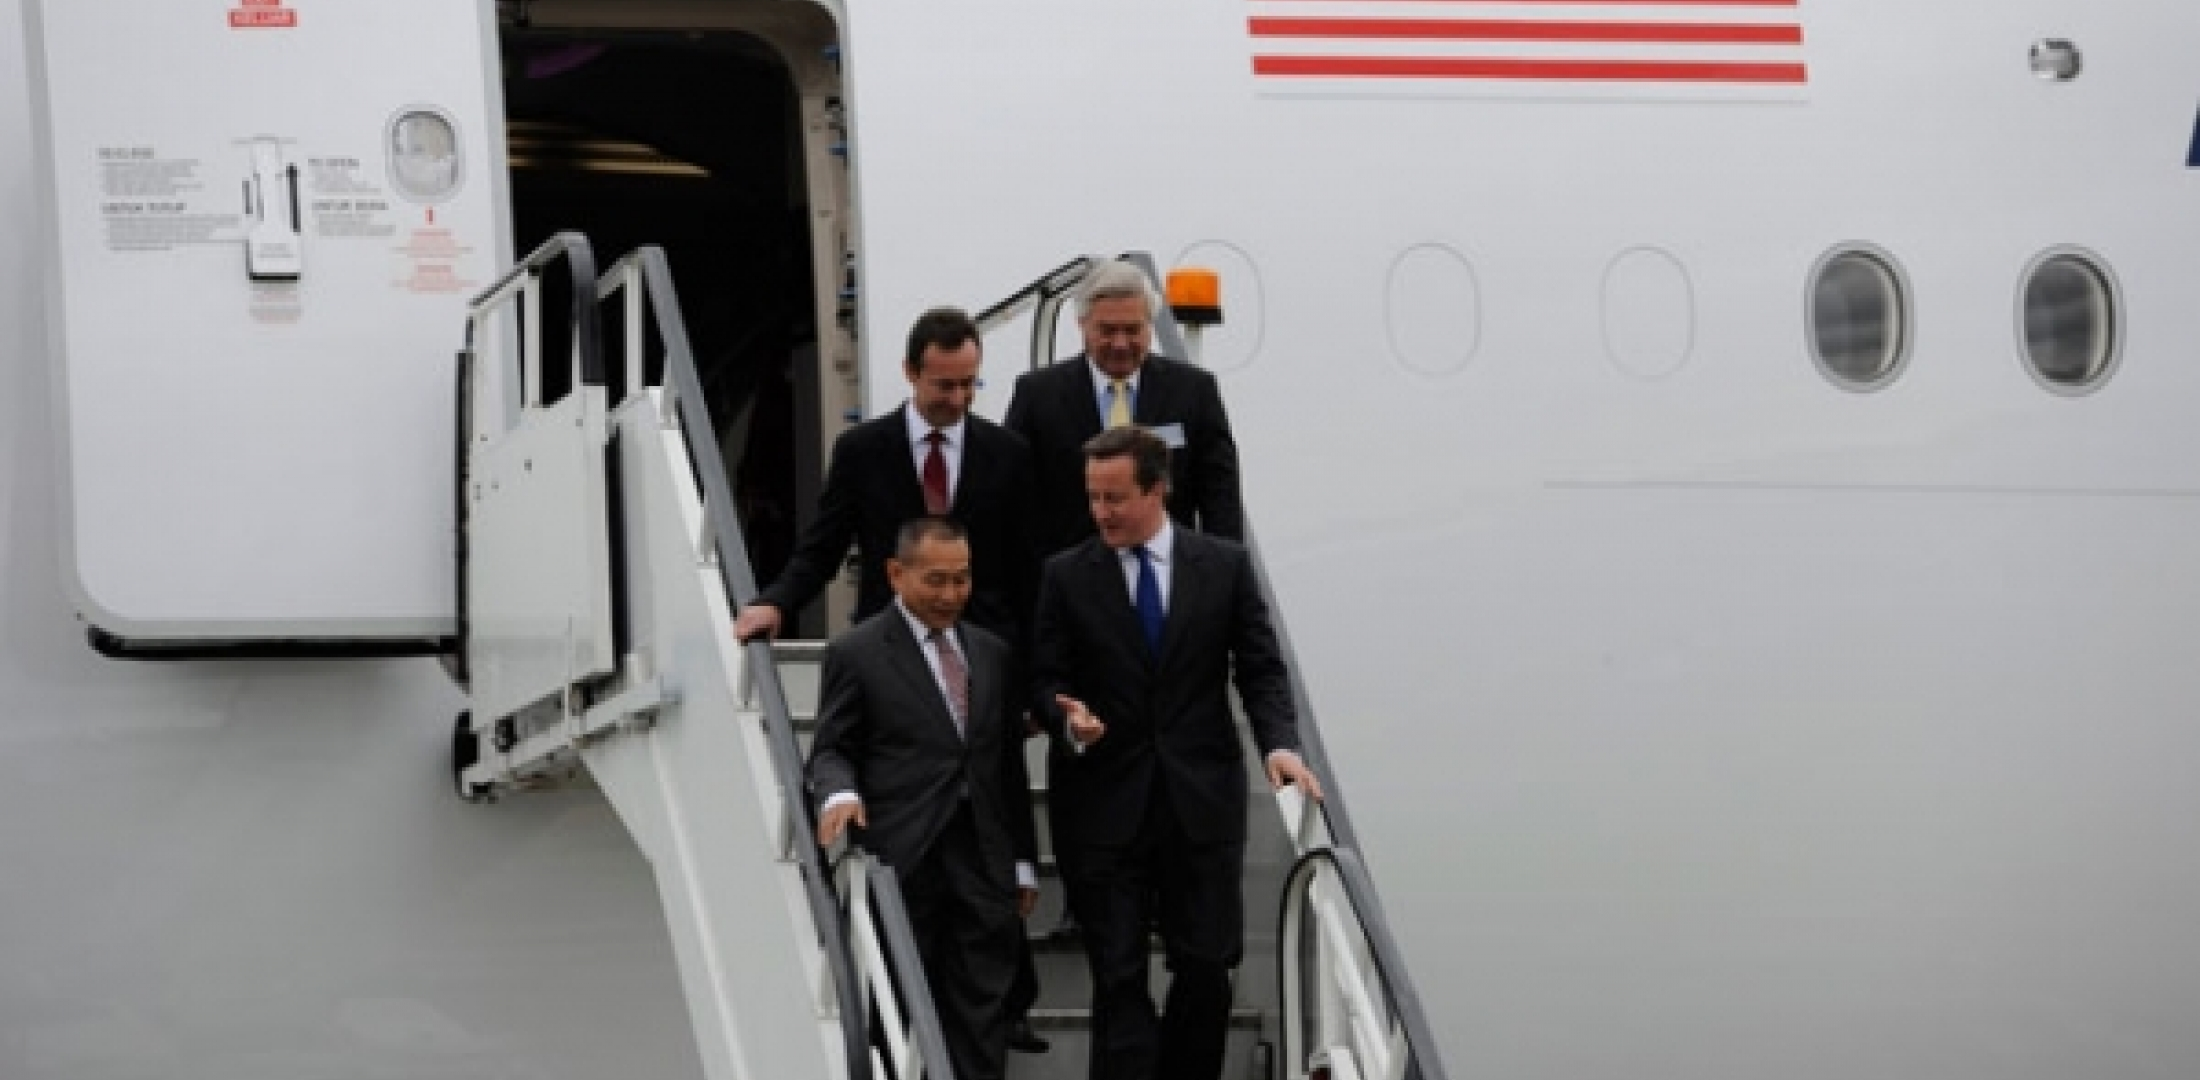 Prime Minister David Cameron at 2012 Airshow